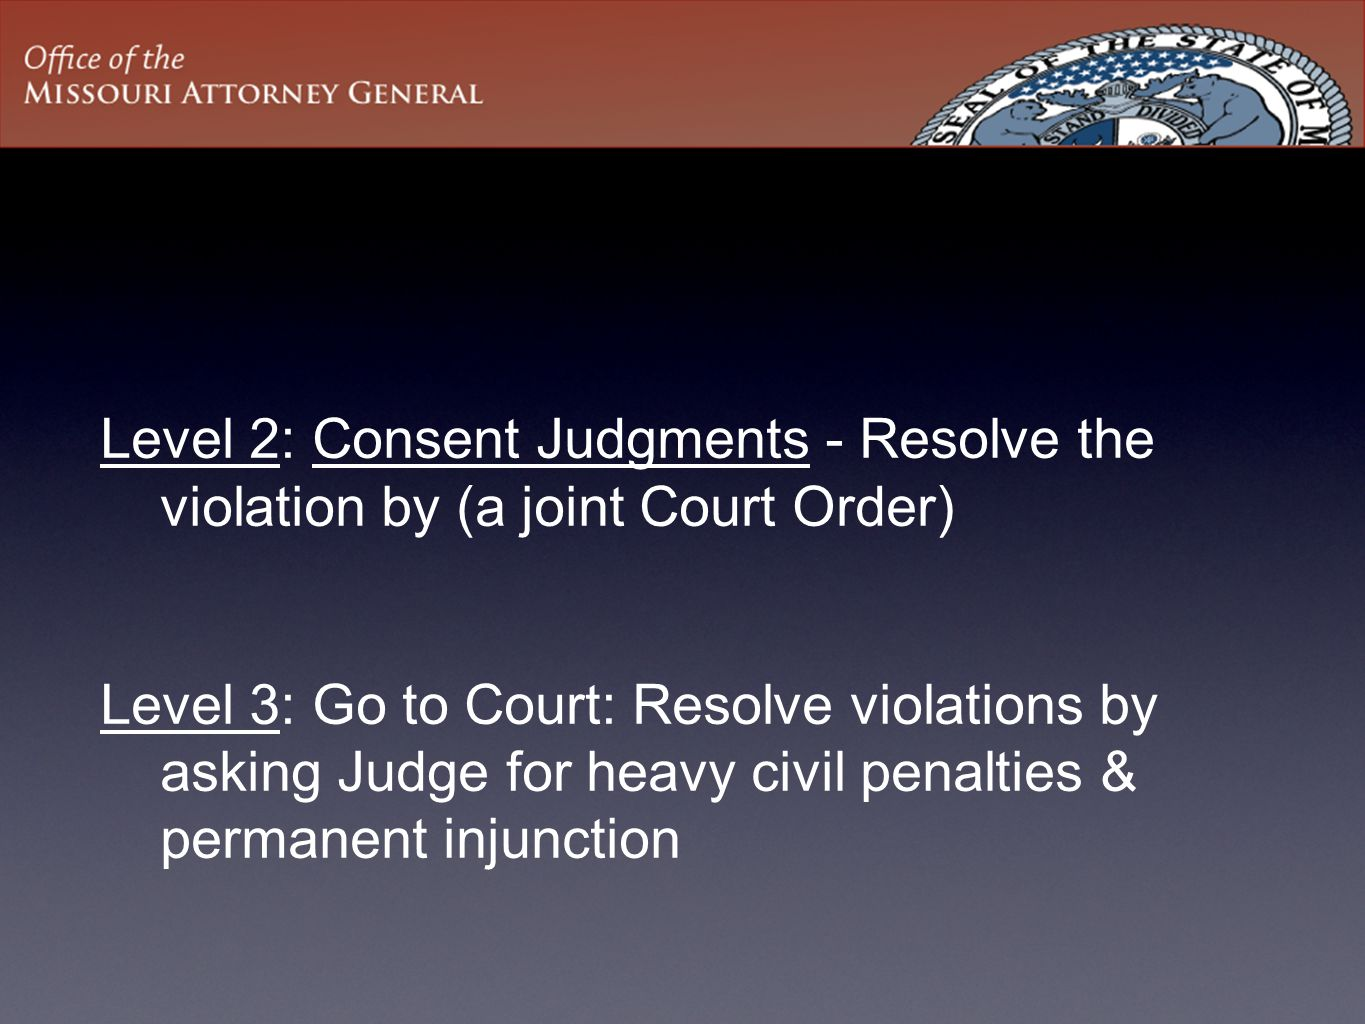 Level 2: Consent Judgments - Resolve the violation by (a joint Court Order) Level 3: Go to Court: Resolve violations by asking Judge for heavy civil penalties & permanent injunction